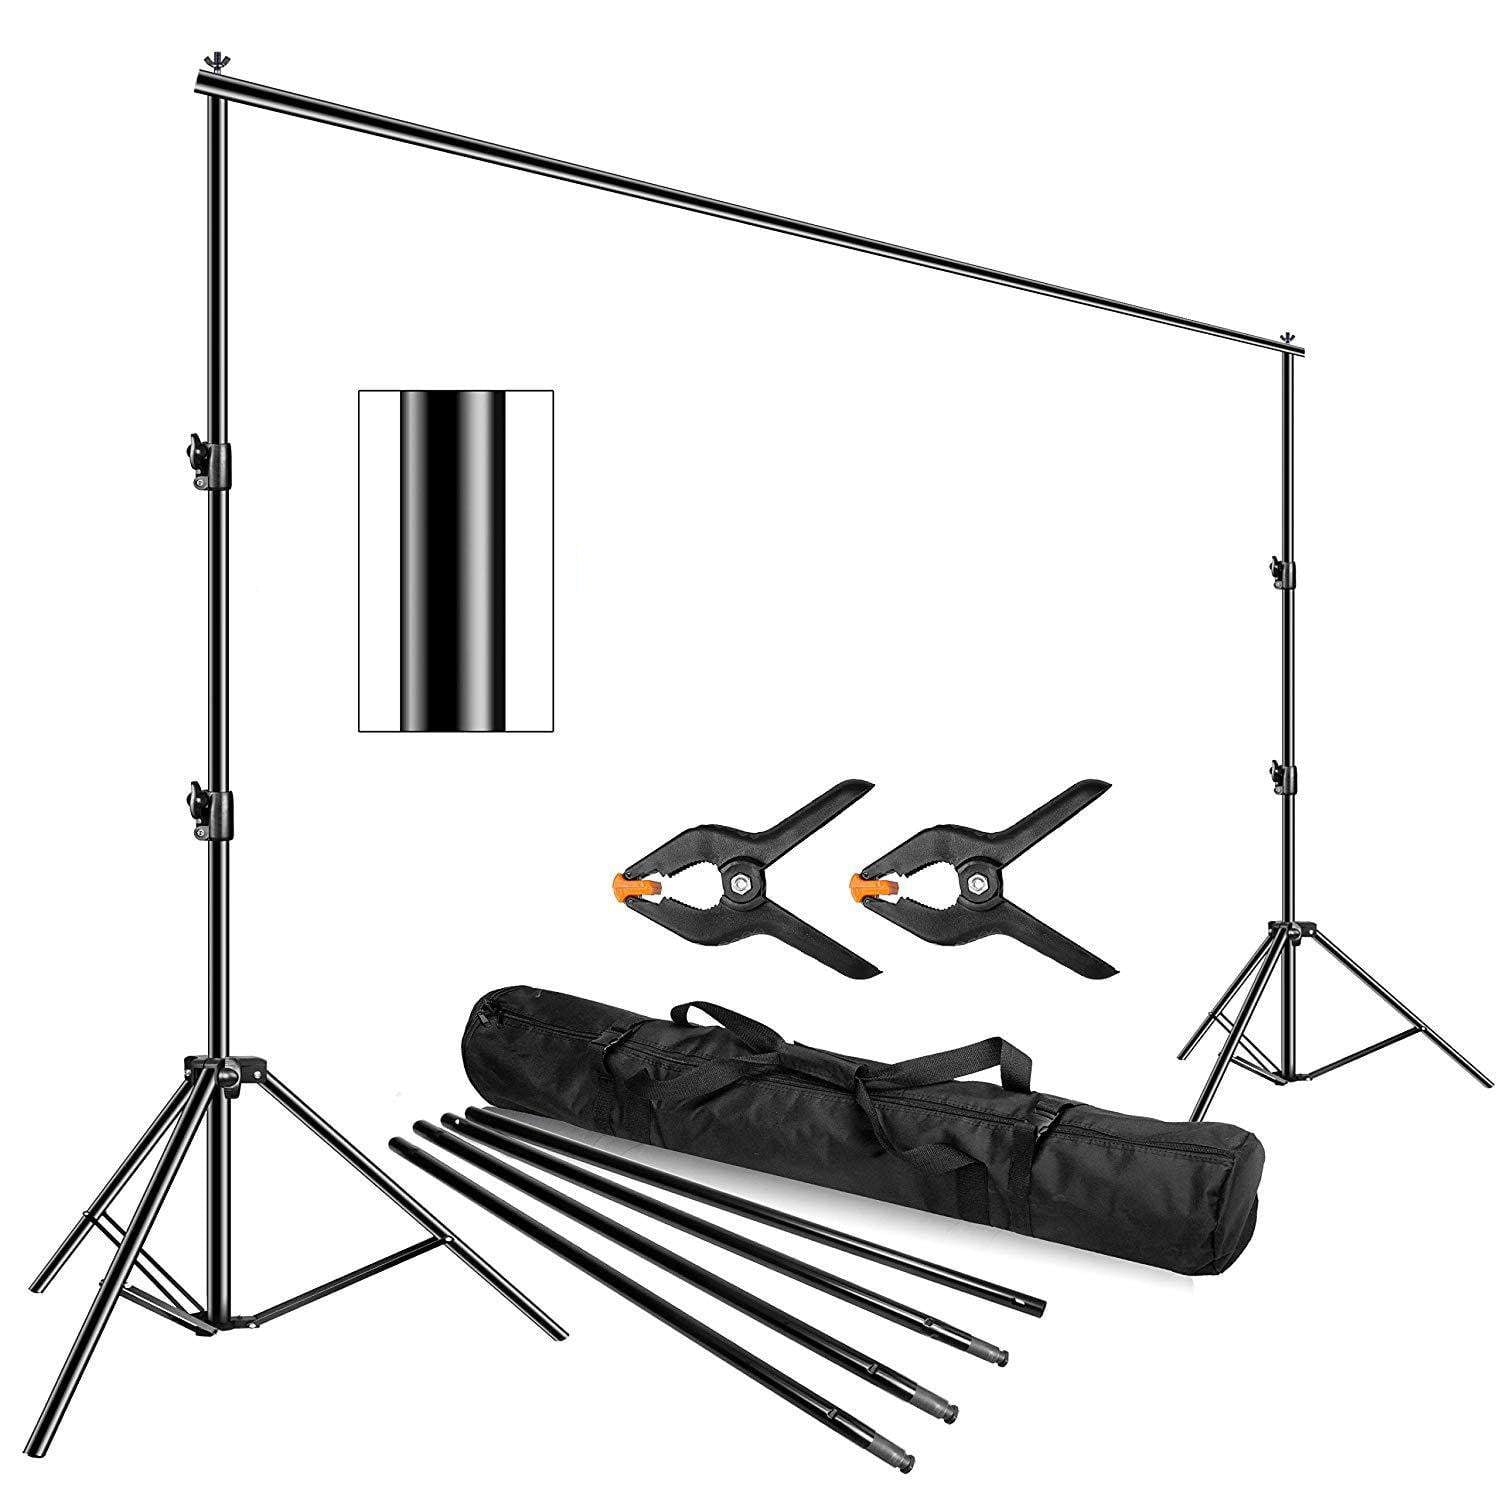 Emart Heavy Duty Photo Video Studio Backdrop Stand